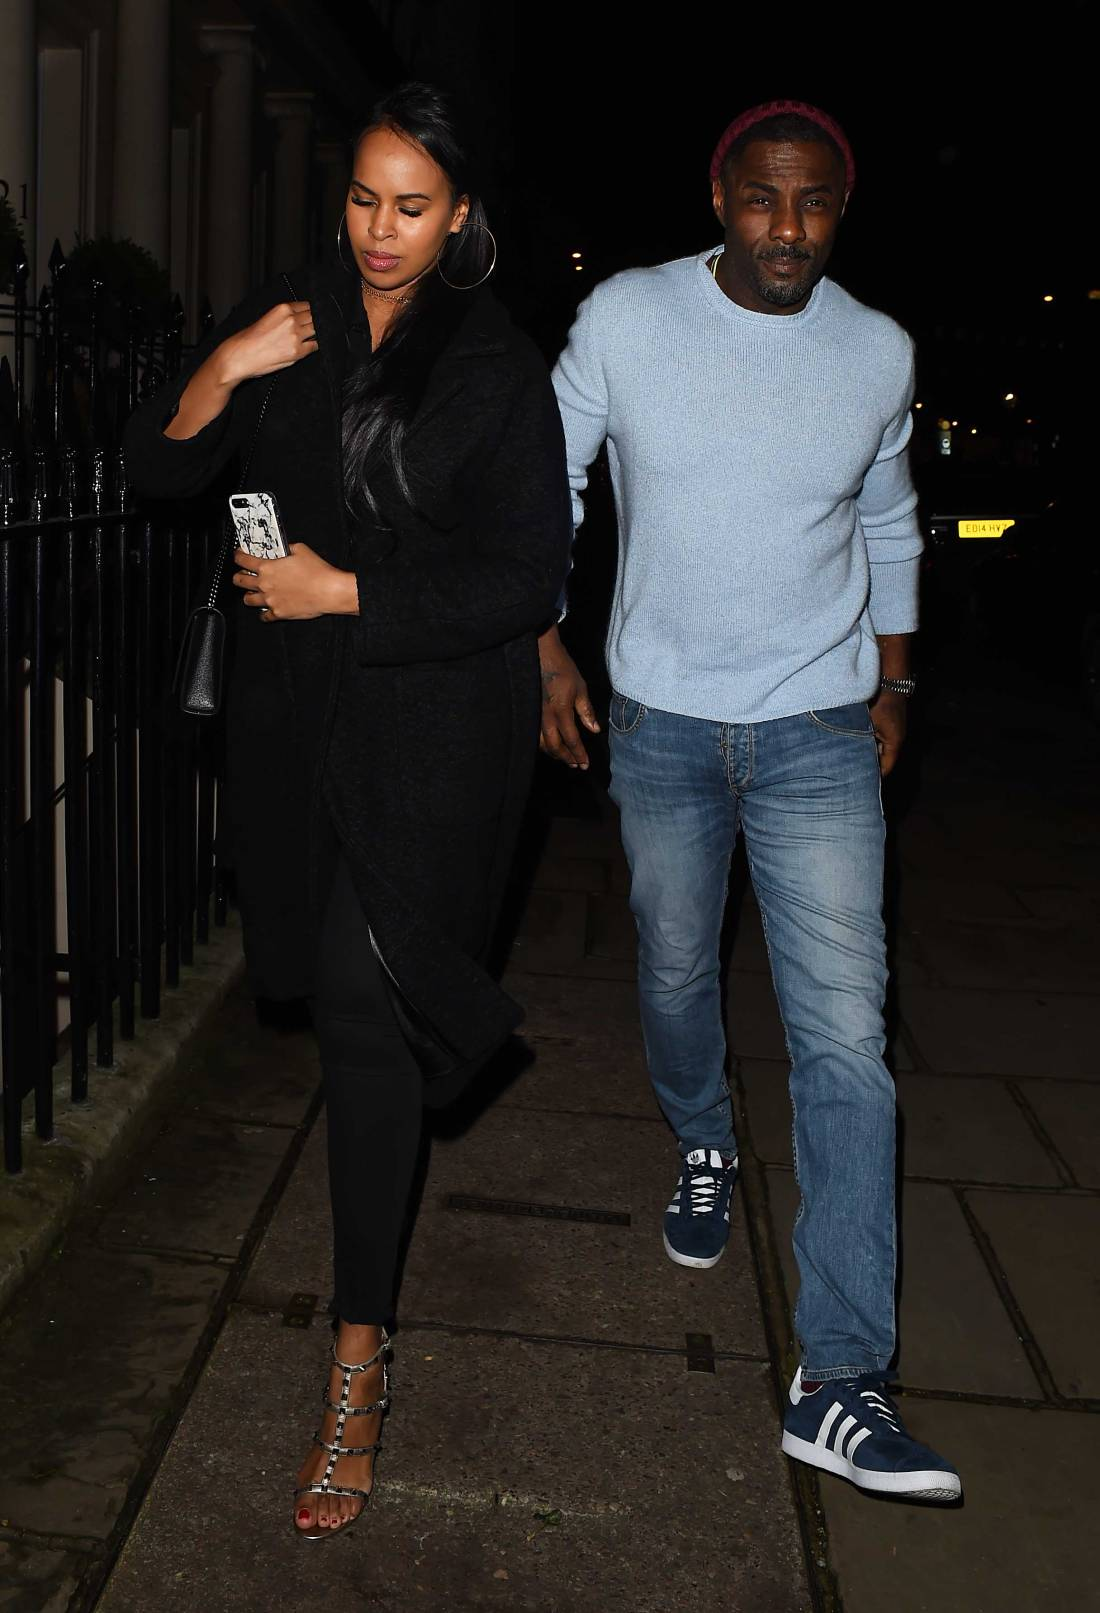 Idris-Elba-and-her-New-Girlfriend-Sabrina-Dhowre-at-Evgeny-Lebedev-hosts-a-lavish-Christmas-party-London-December-15-2017-1.jpg